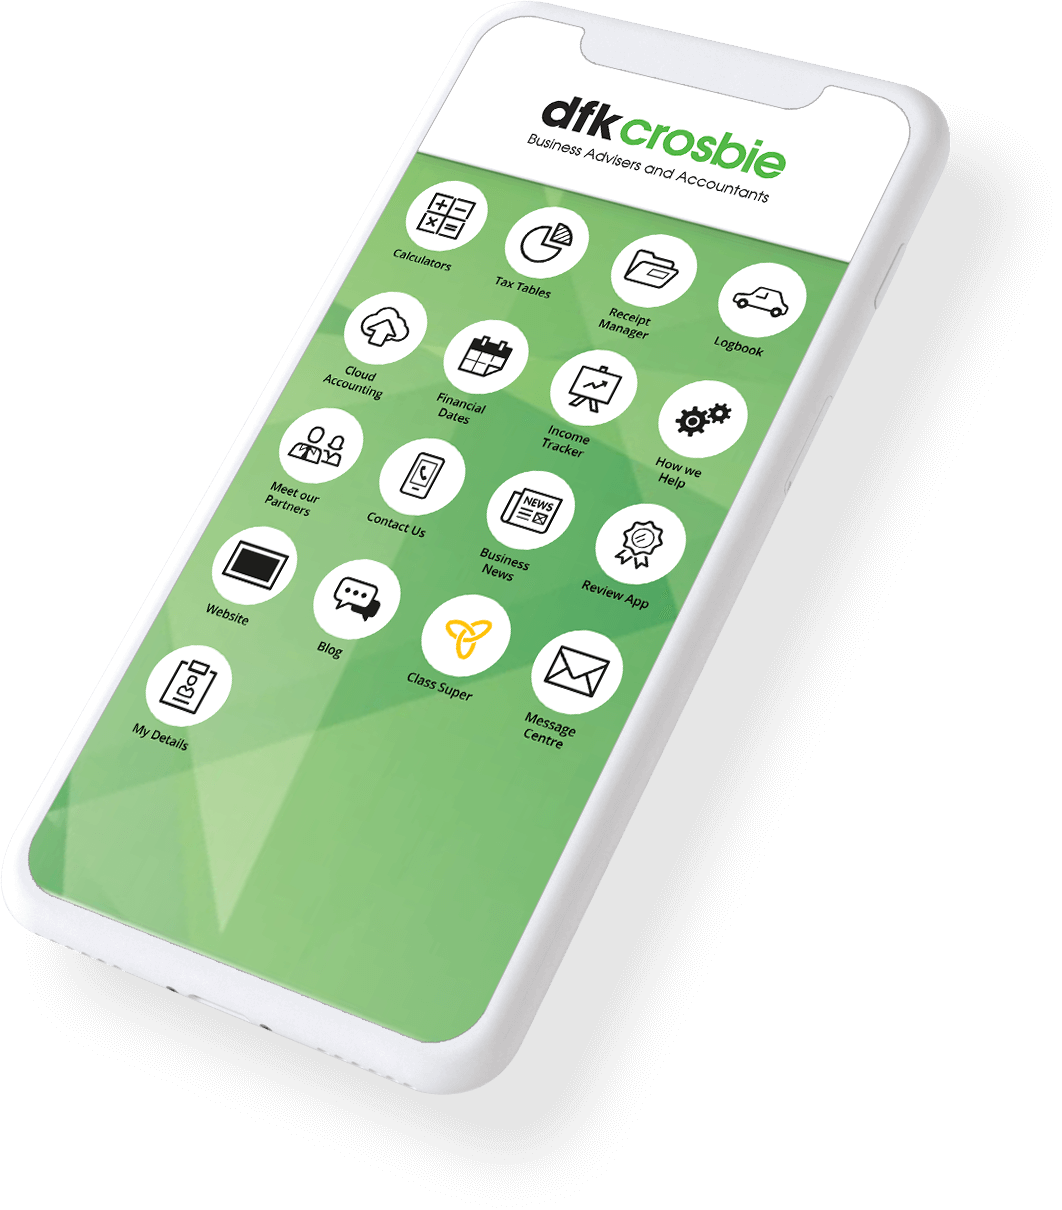 Example of a custom branded MyFirmsApp home screen on a mobile phone.